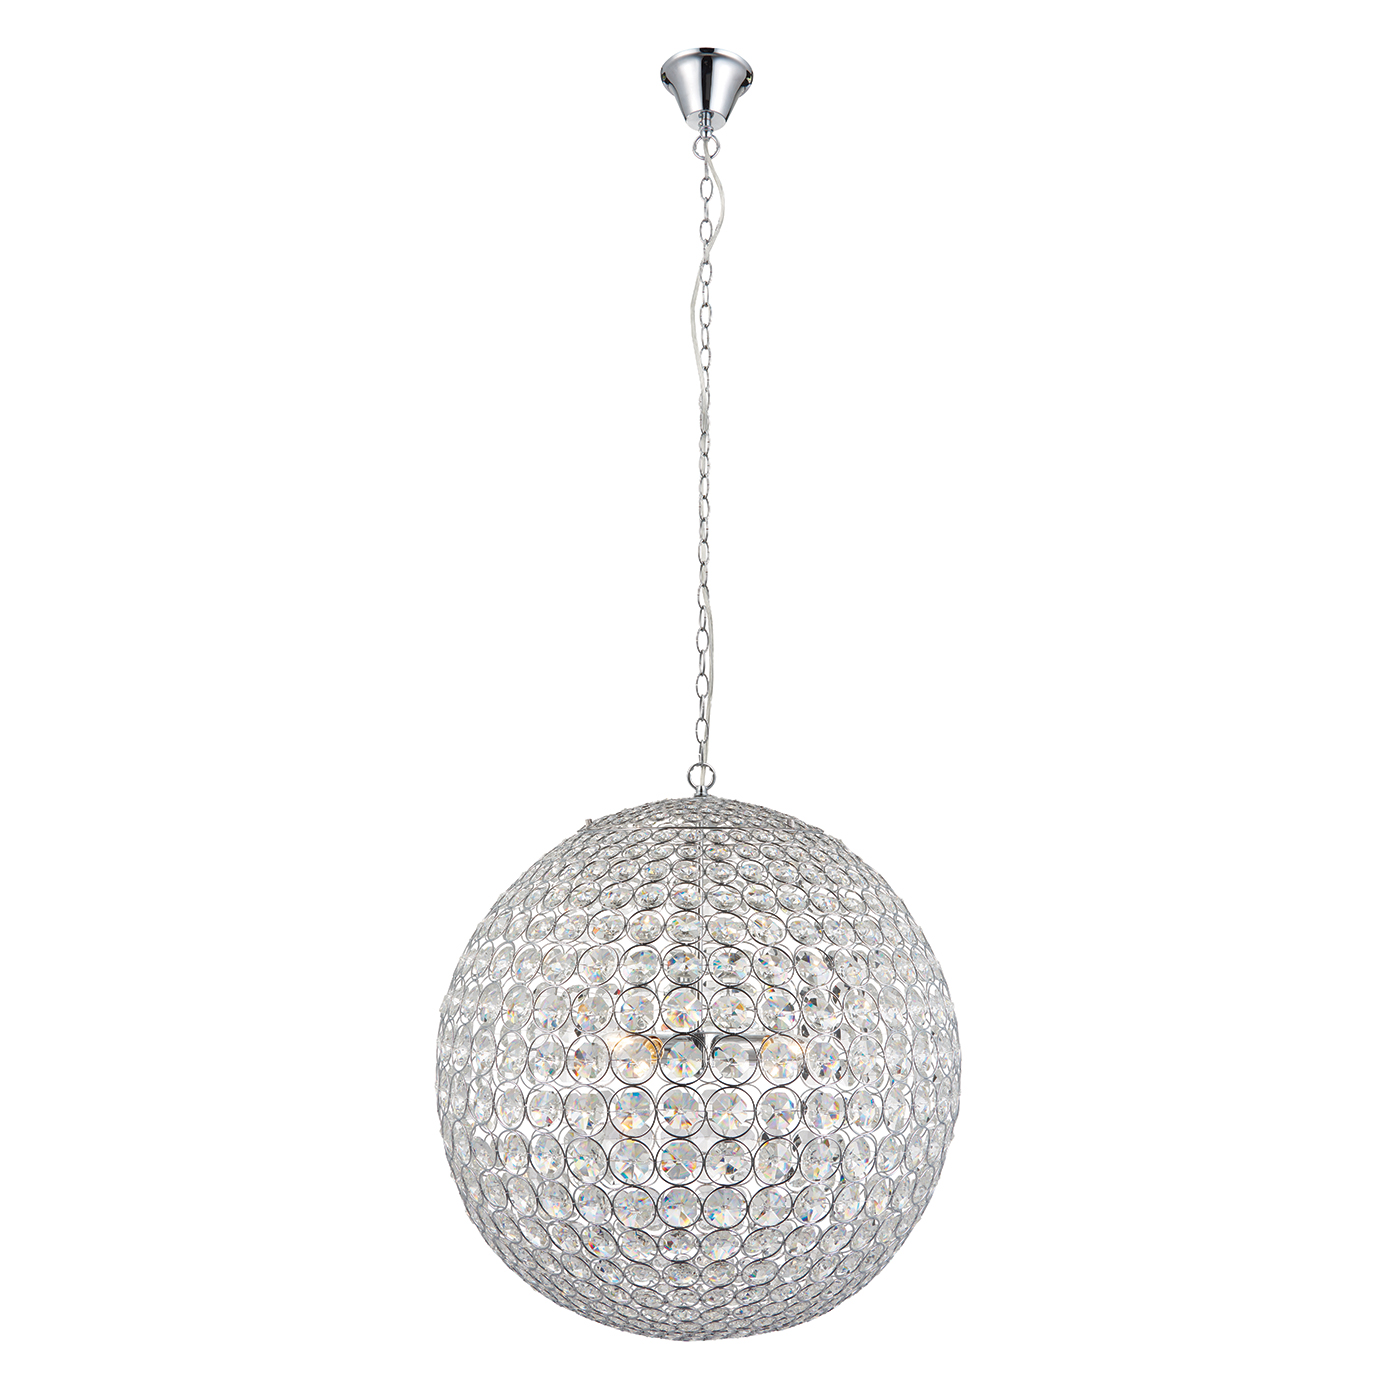 Endon Miley pendant 4x 60W Clear crystal glass detail & chrome effect plate Thumbnail 1